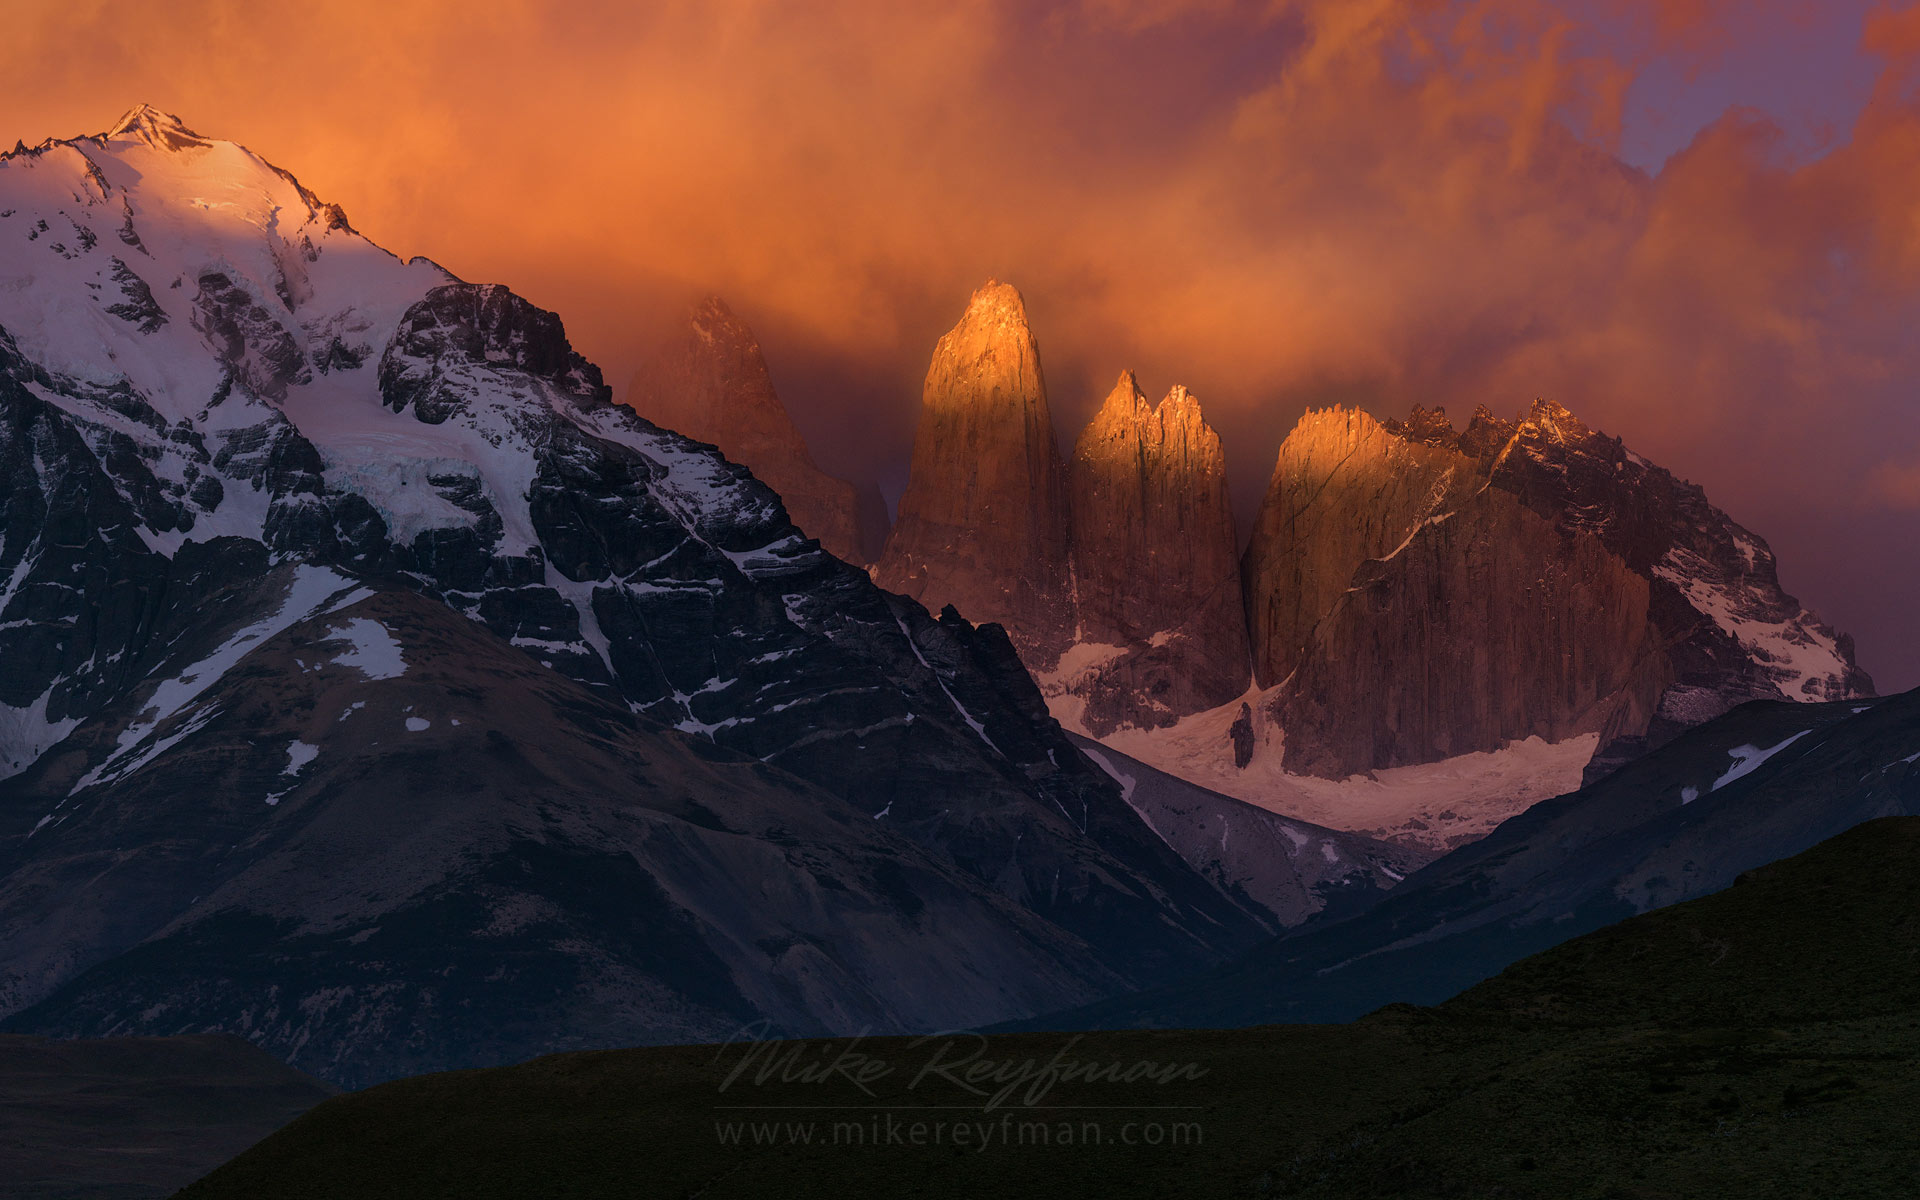 Towers of Pine. Cordillera del Paine. Torres del Paine National Park, Ultima Esperanza Province, Magallanes and Antartica Chilena Region XII, Patagonia, Chile. - Torres-Del-Paine-National-Park-Patagonia-Chile - Mike Reyfman Photography